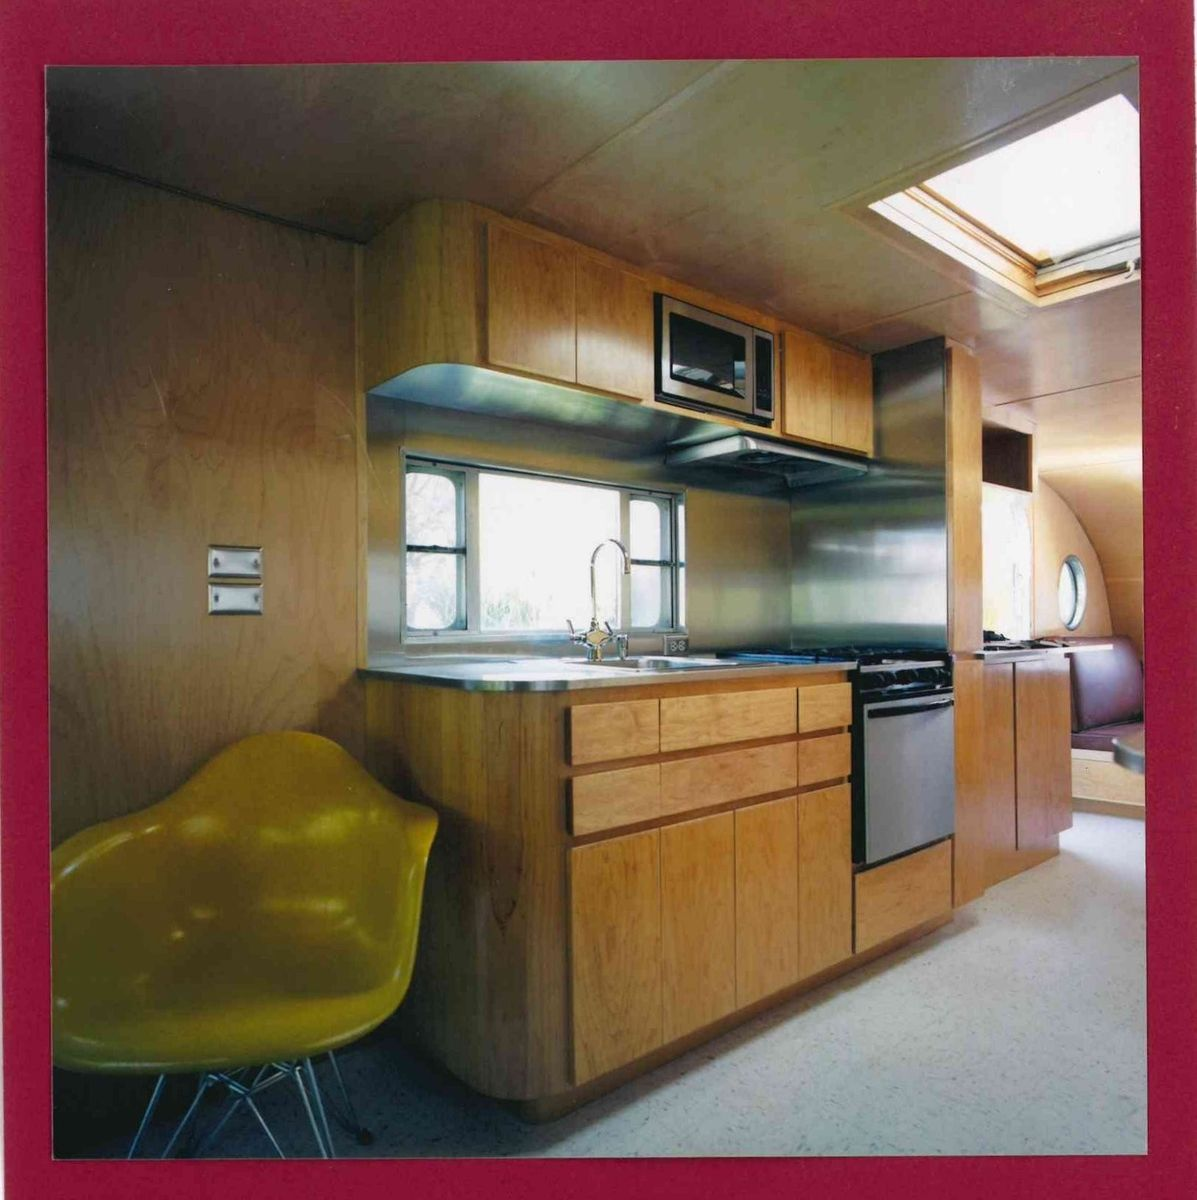 Handmade Custom Teardrop Trailer Interior Wood Trim And Cabinetry by Neely Custom Woodworking ...